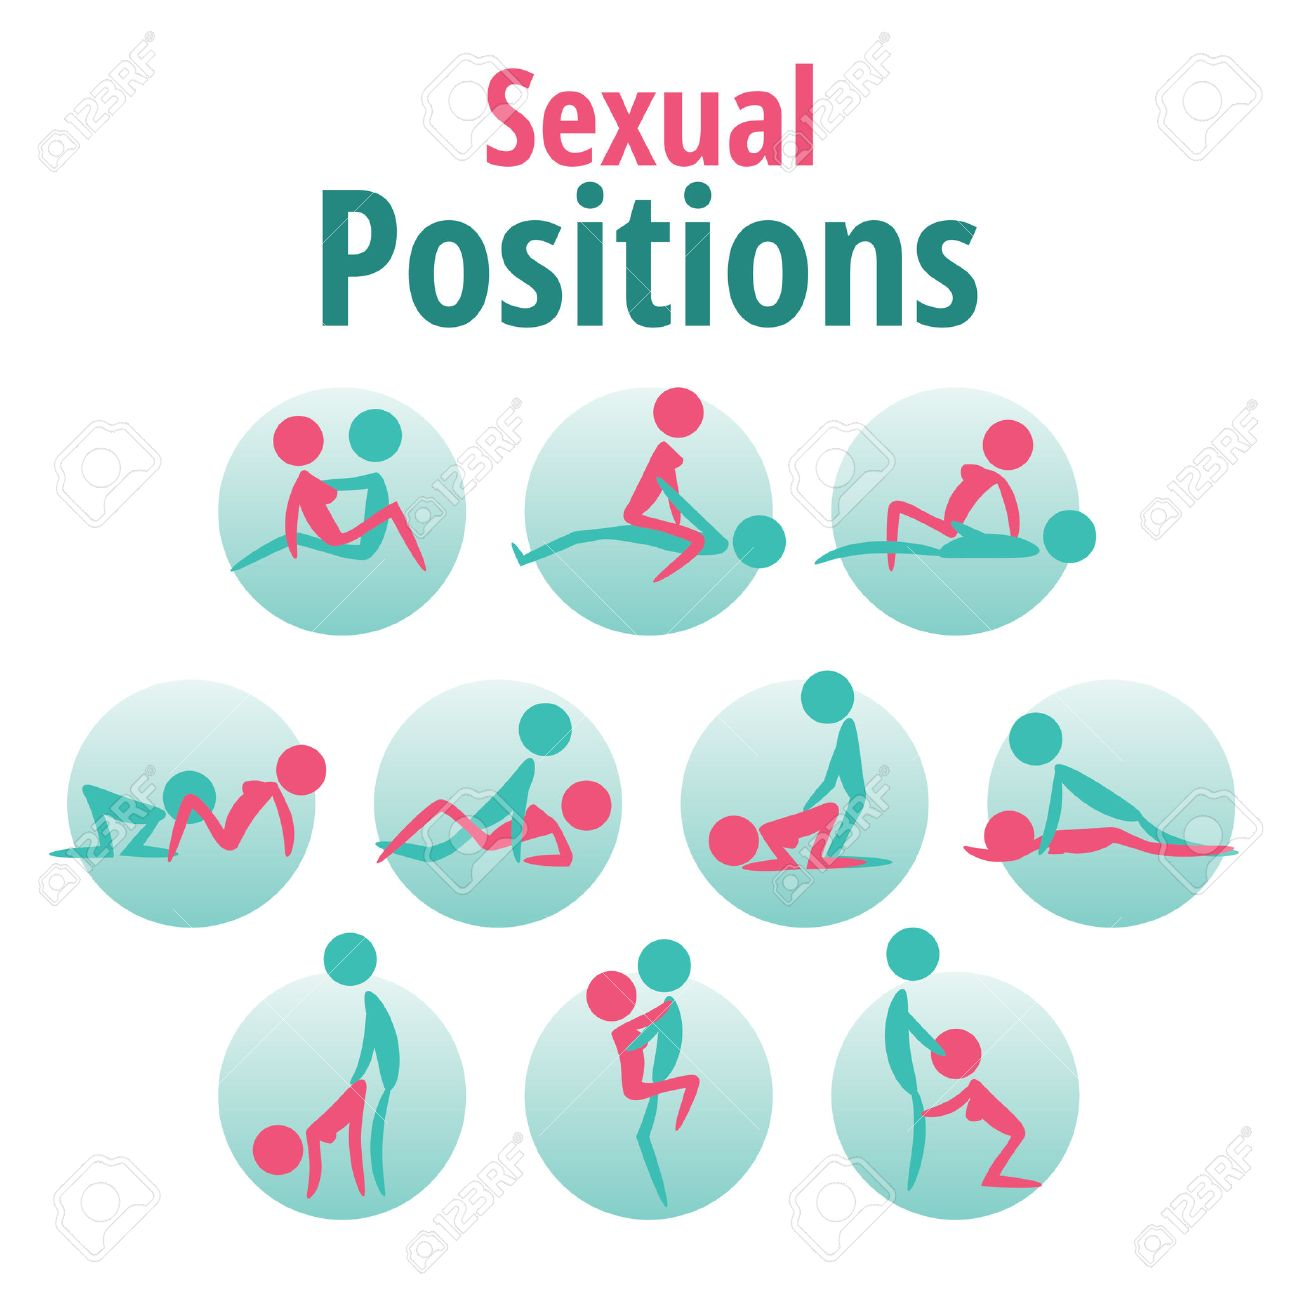 Sexual positiona pictures